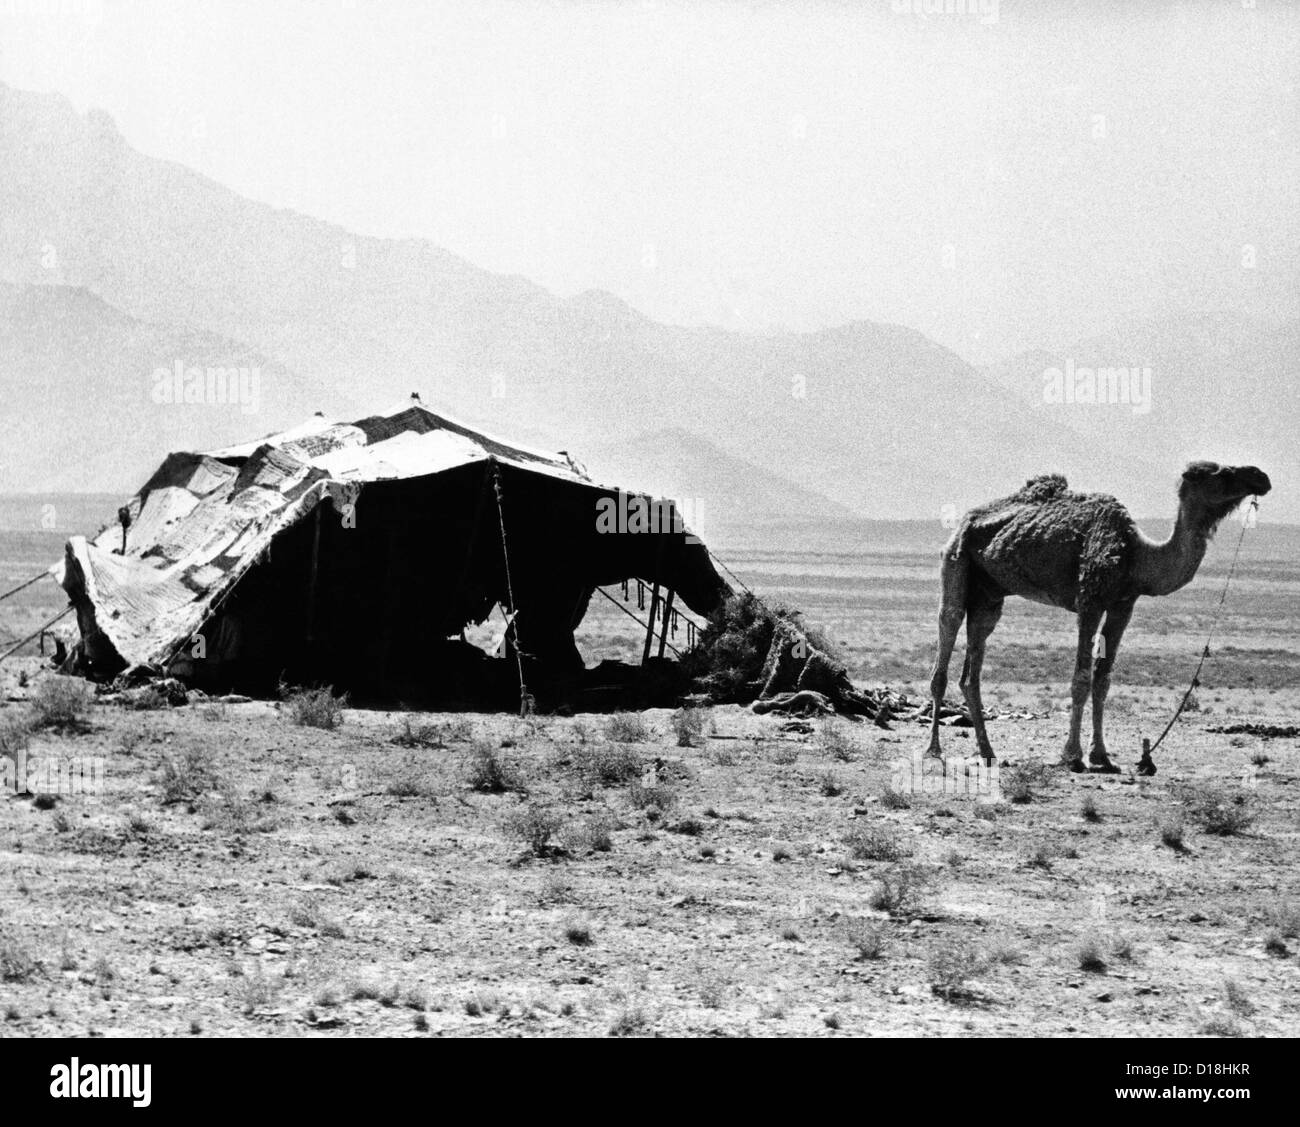 Nomadic tents can be seen in a mountainous area outside of Kabul, Afghanistan. Sept. 17, 1971. (CSU ALPHA 1060) Stock Photo